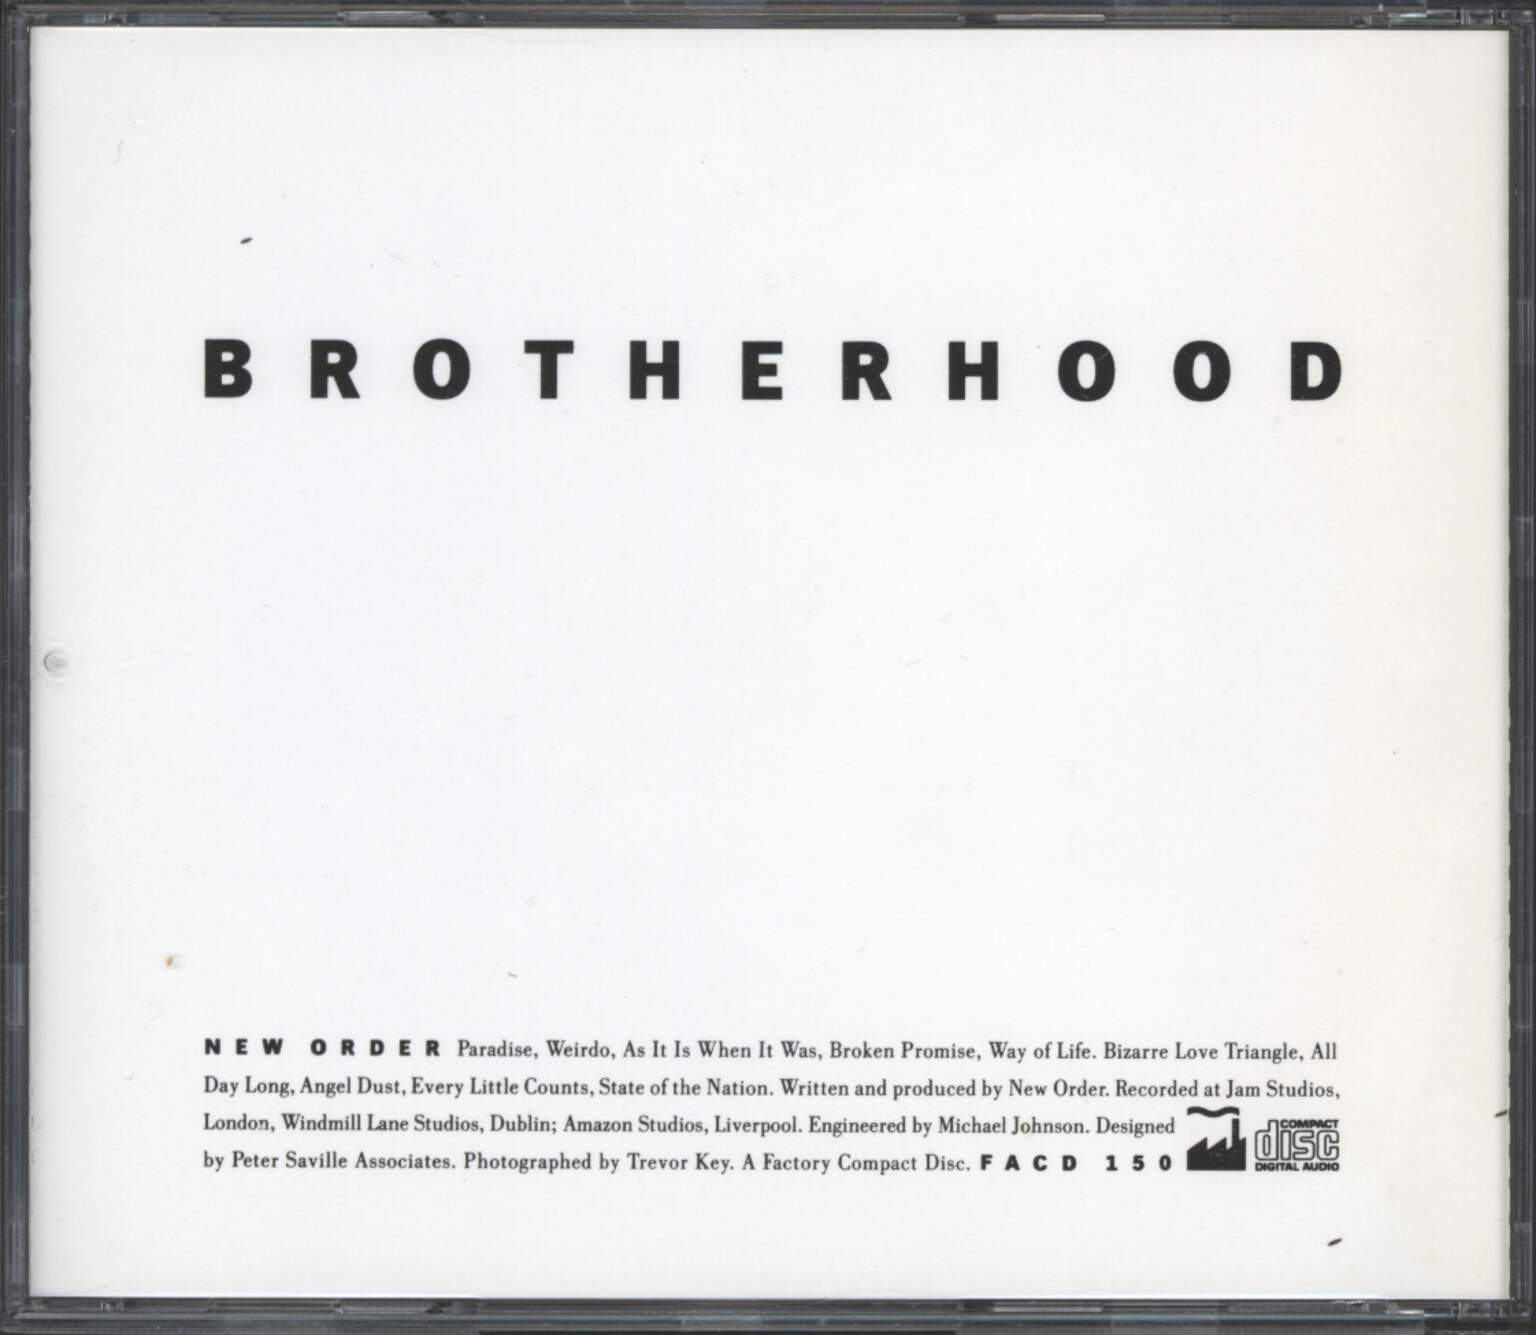 New Order: Brotherhood, CD